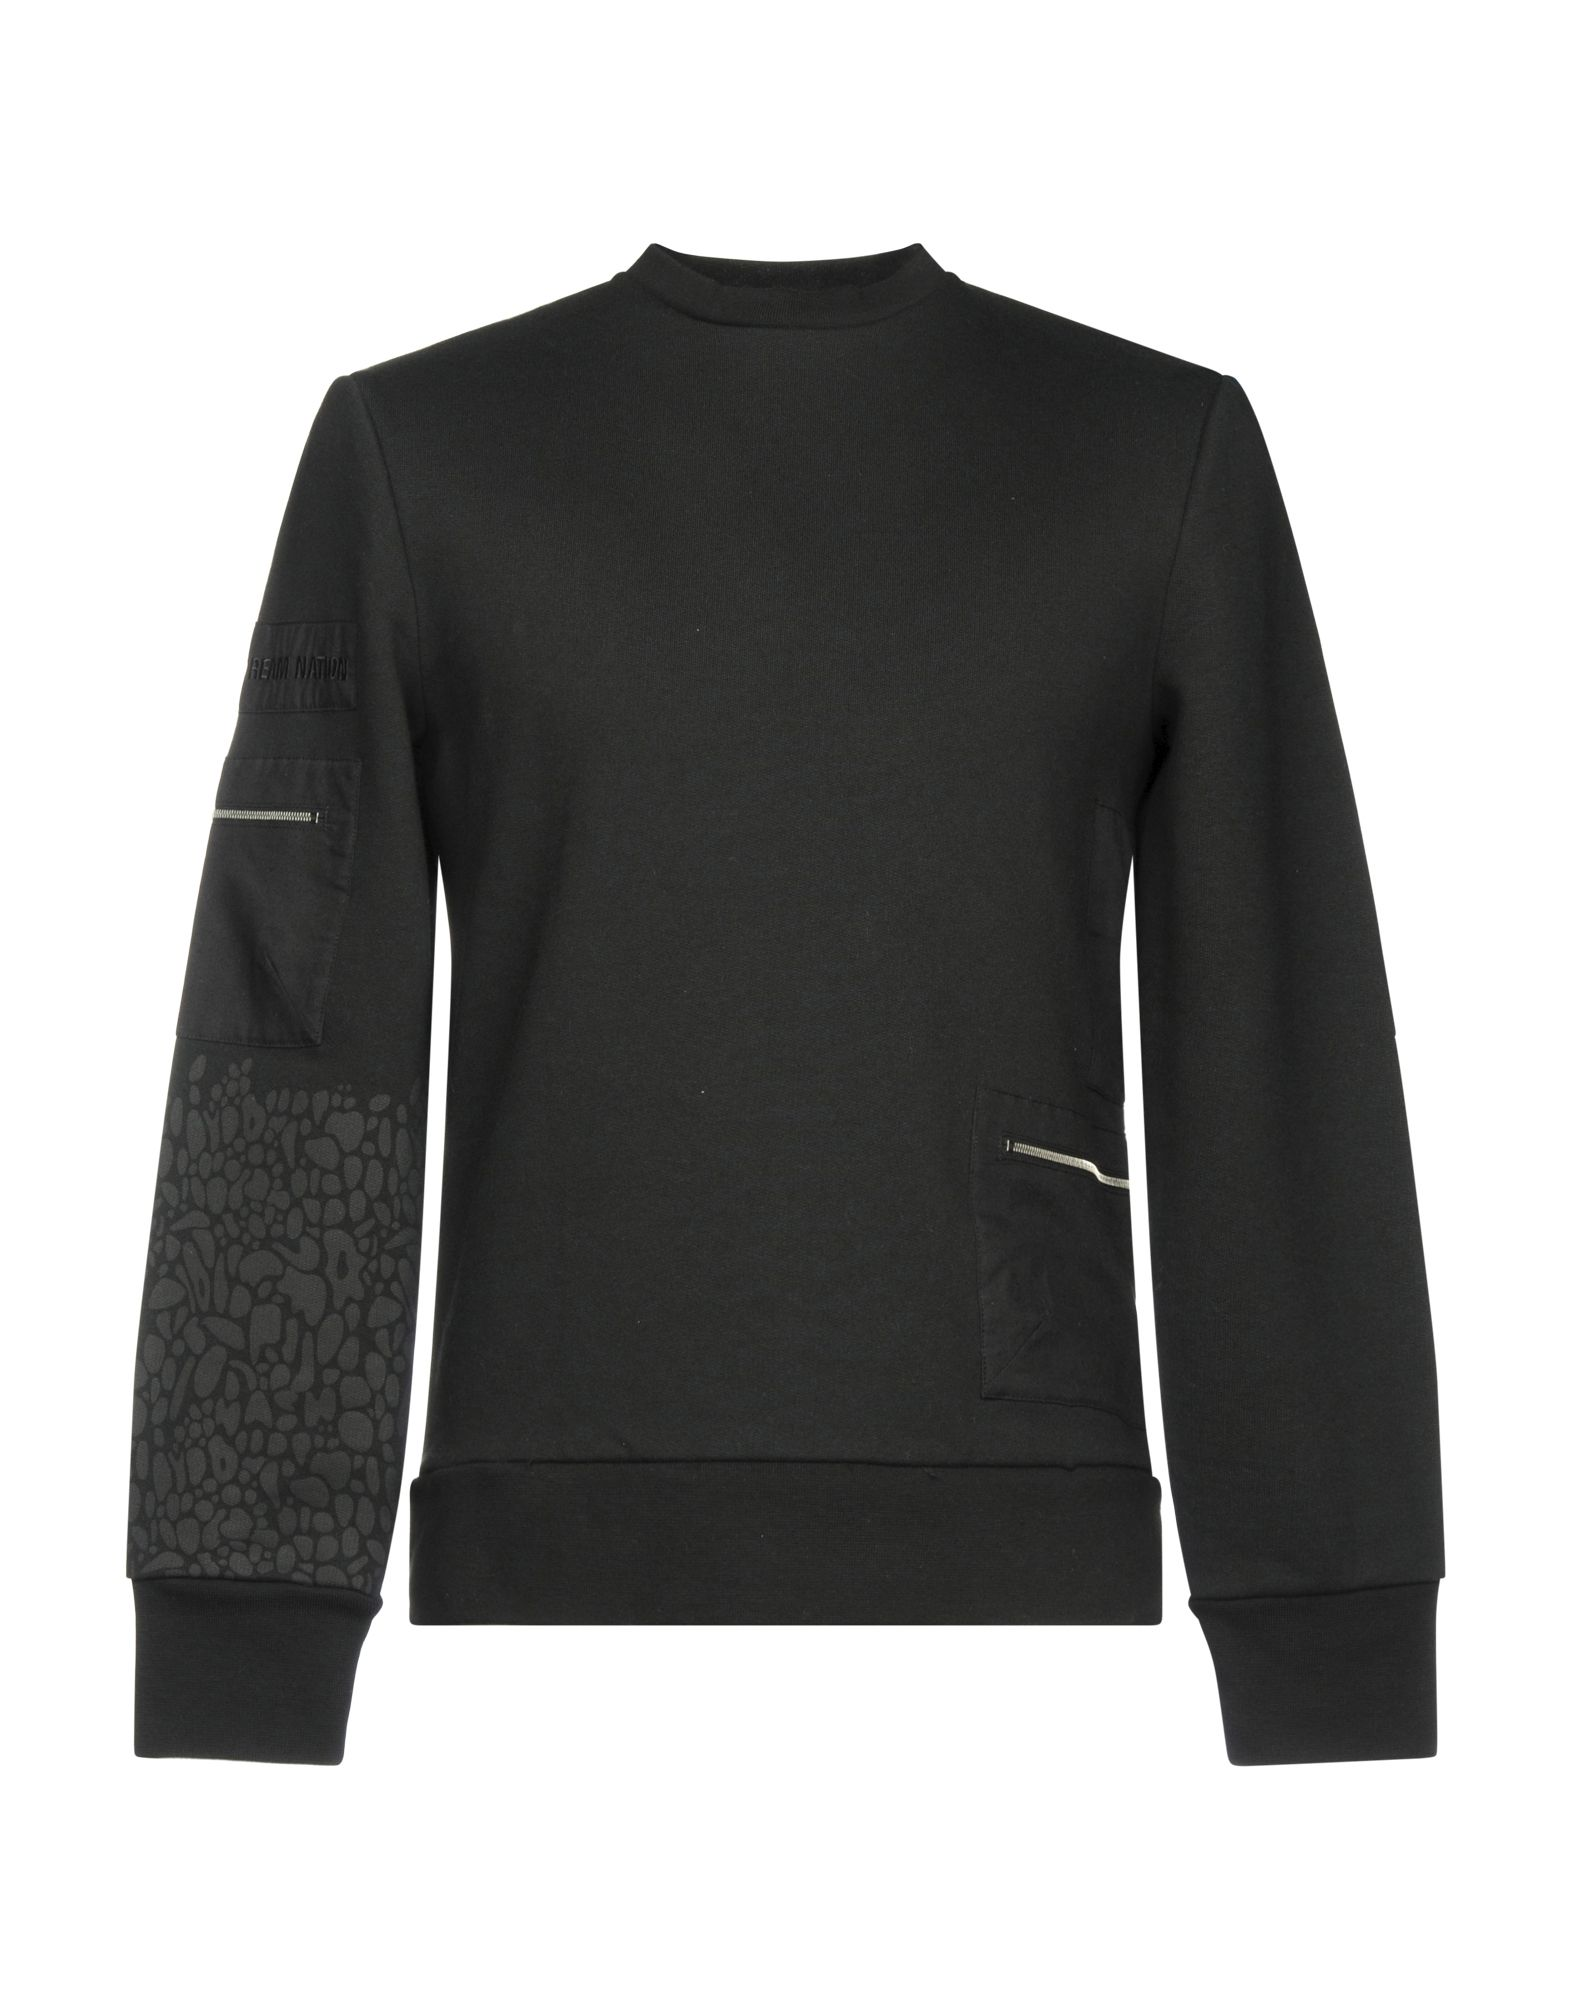 TIM COPPENS Sweatshirt in Black